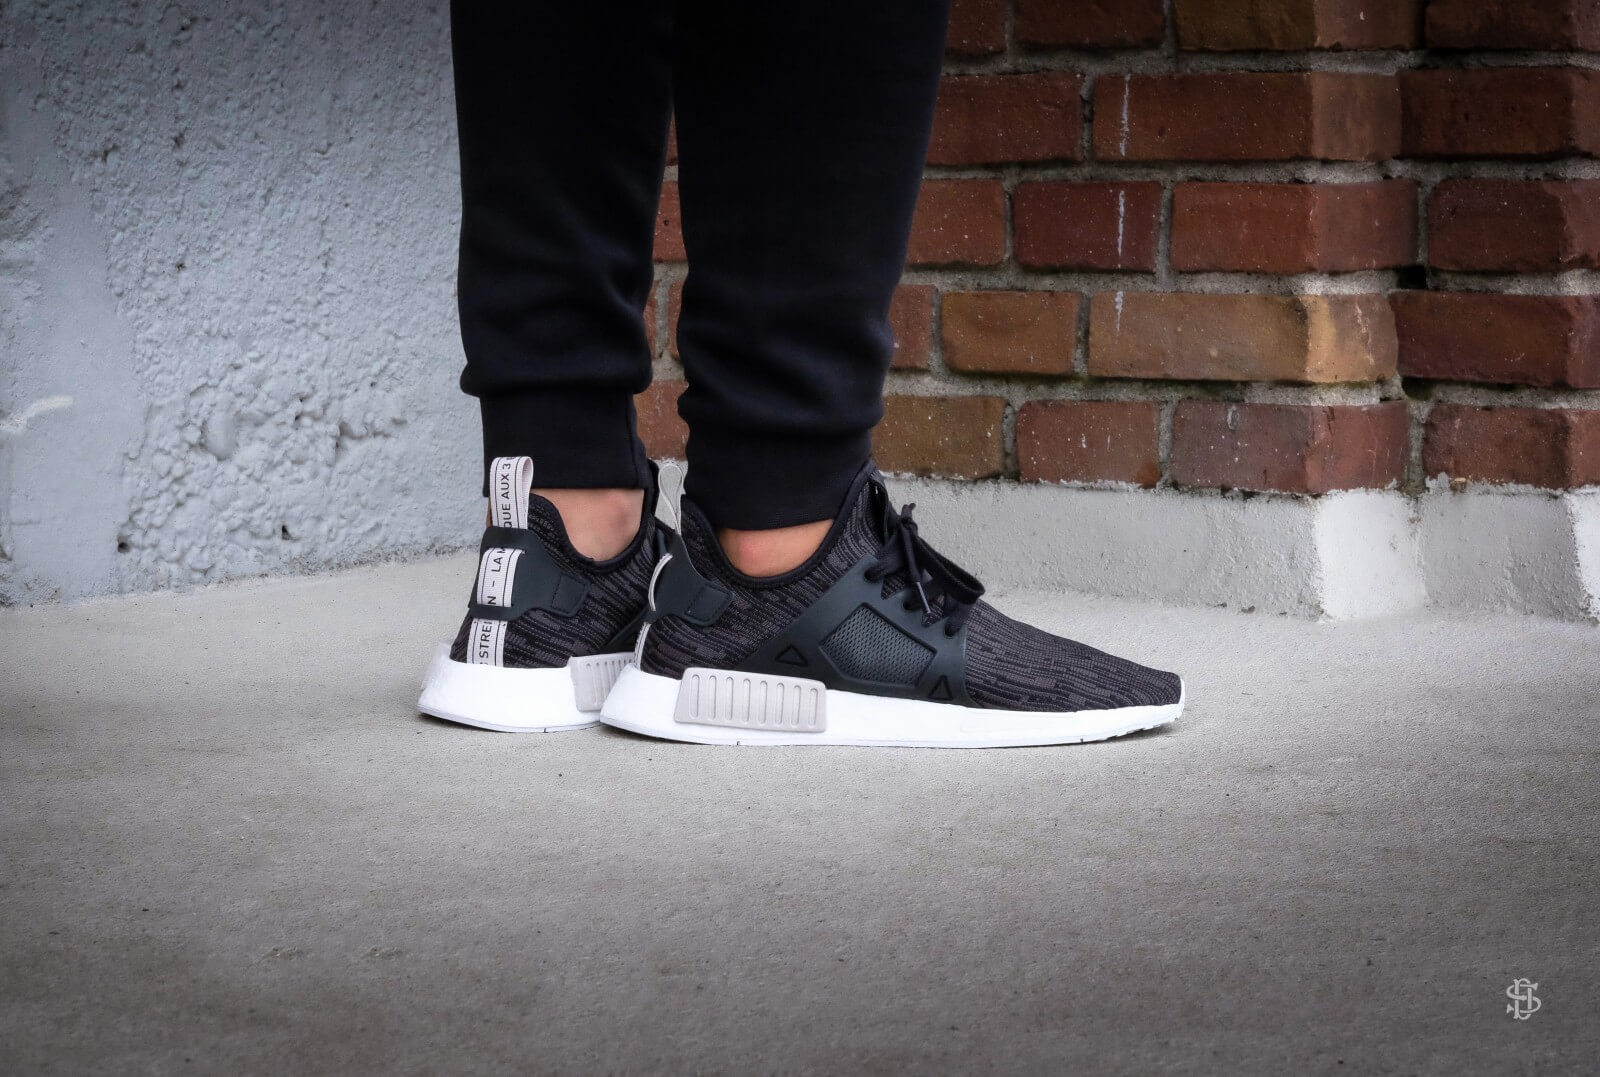 HOW TO LACE ADIDAS NMD XR1